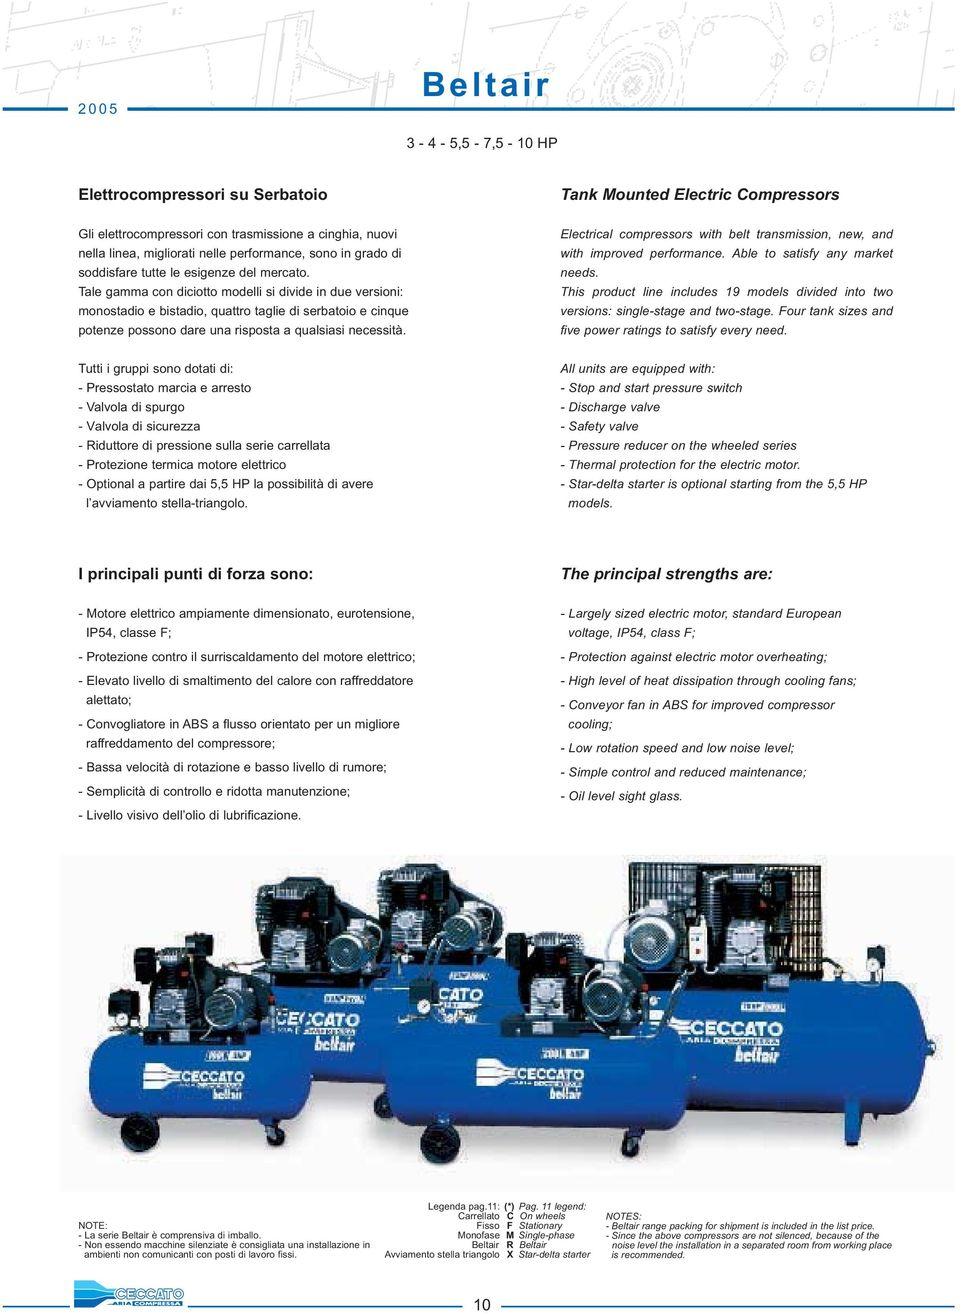 Tank Mounted Electric Compressors Electrical compressors with belt transmission, new, and with improved performance. Able to satisfy any market needs.